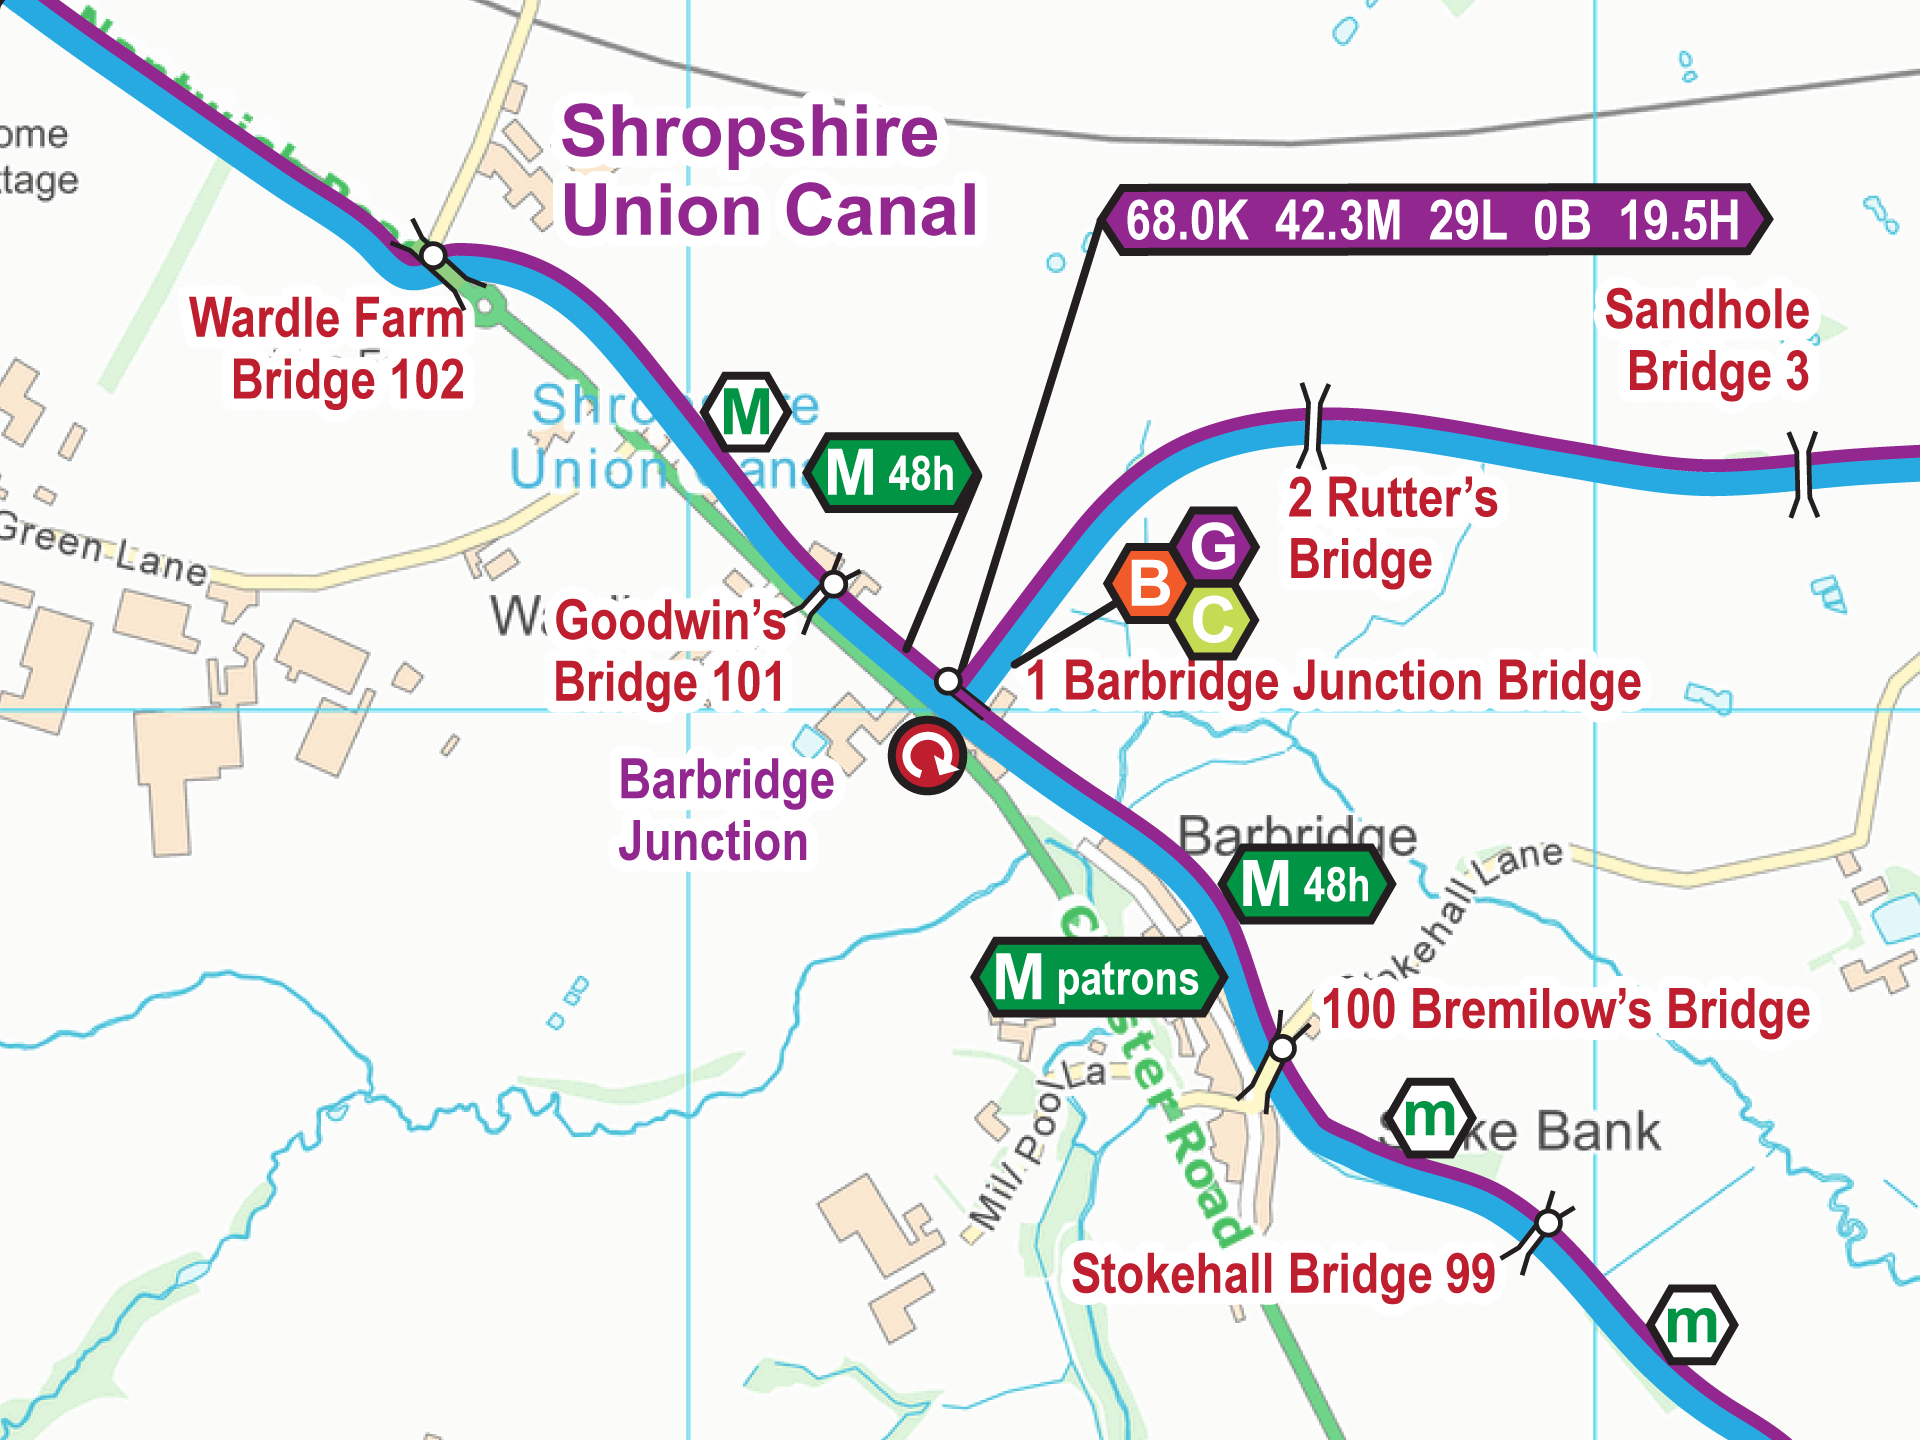 Shropshire Union C Map – Waterway Routes on